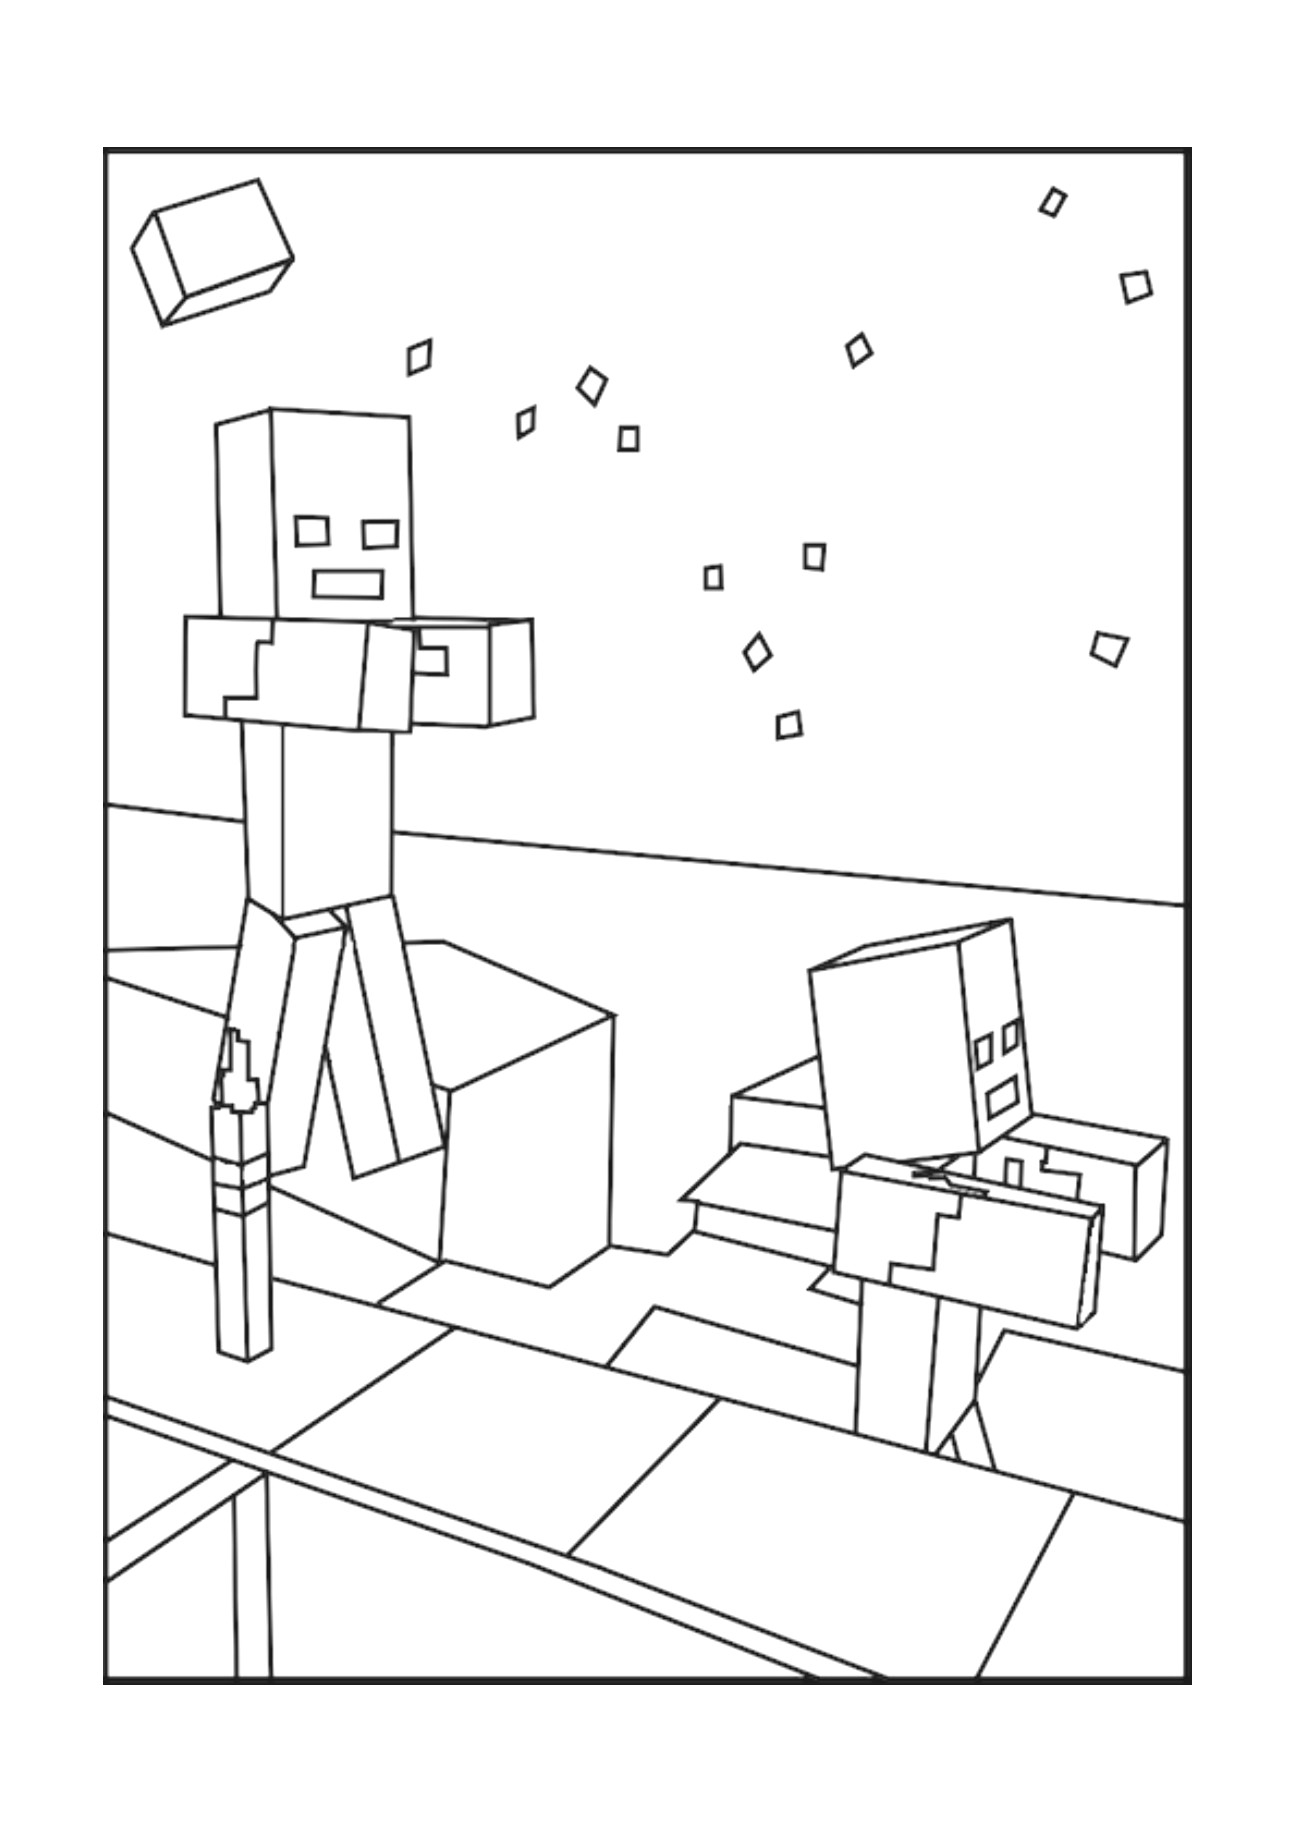 minecraft pictures to print of herobrine creative photo of herobrine coloring pages vicomsinfo minecraft pictures of print to herobrine